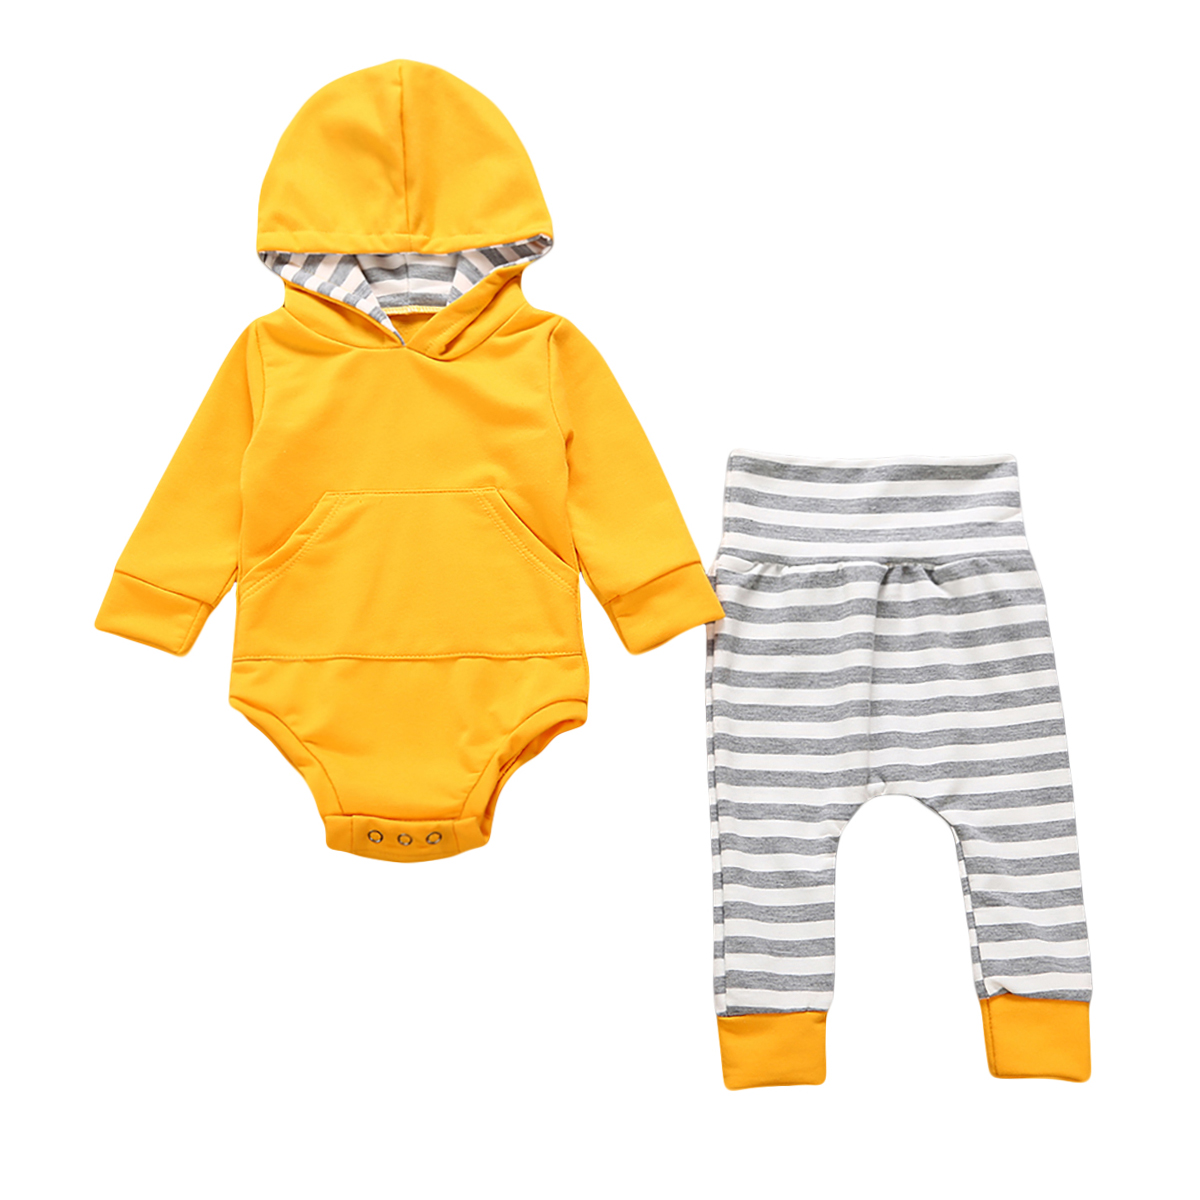 Casual Autumn Newborn Toddler Baby Boy Girl Bodysuit Tops+Pants 2pcs Outfits Set Clothes Size 0-24M